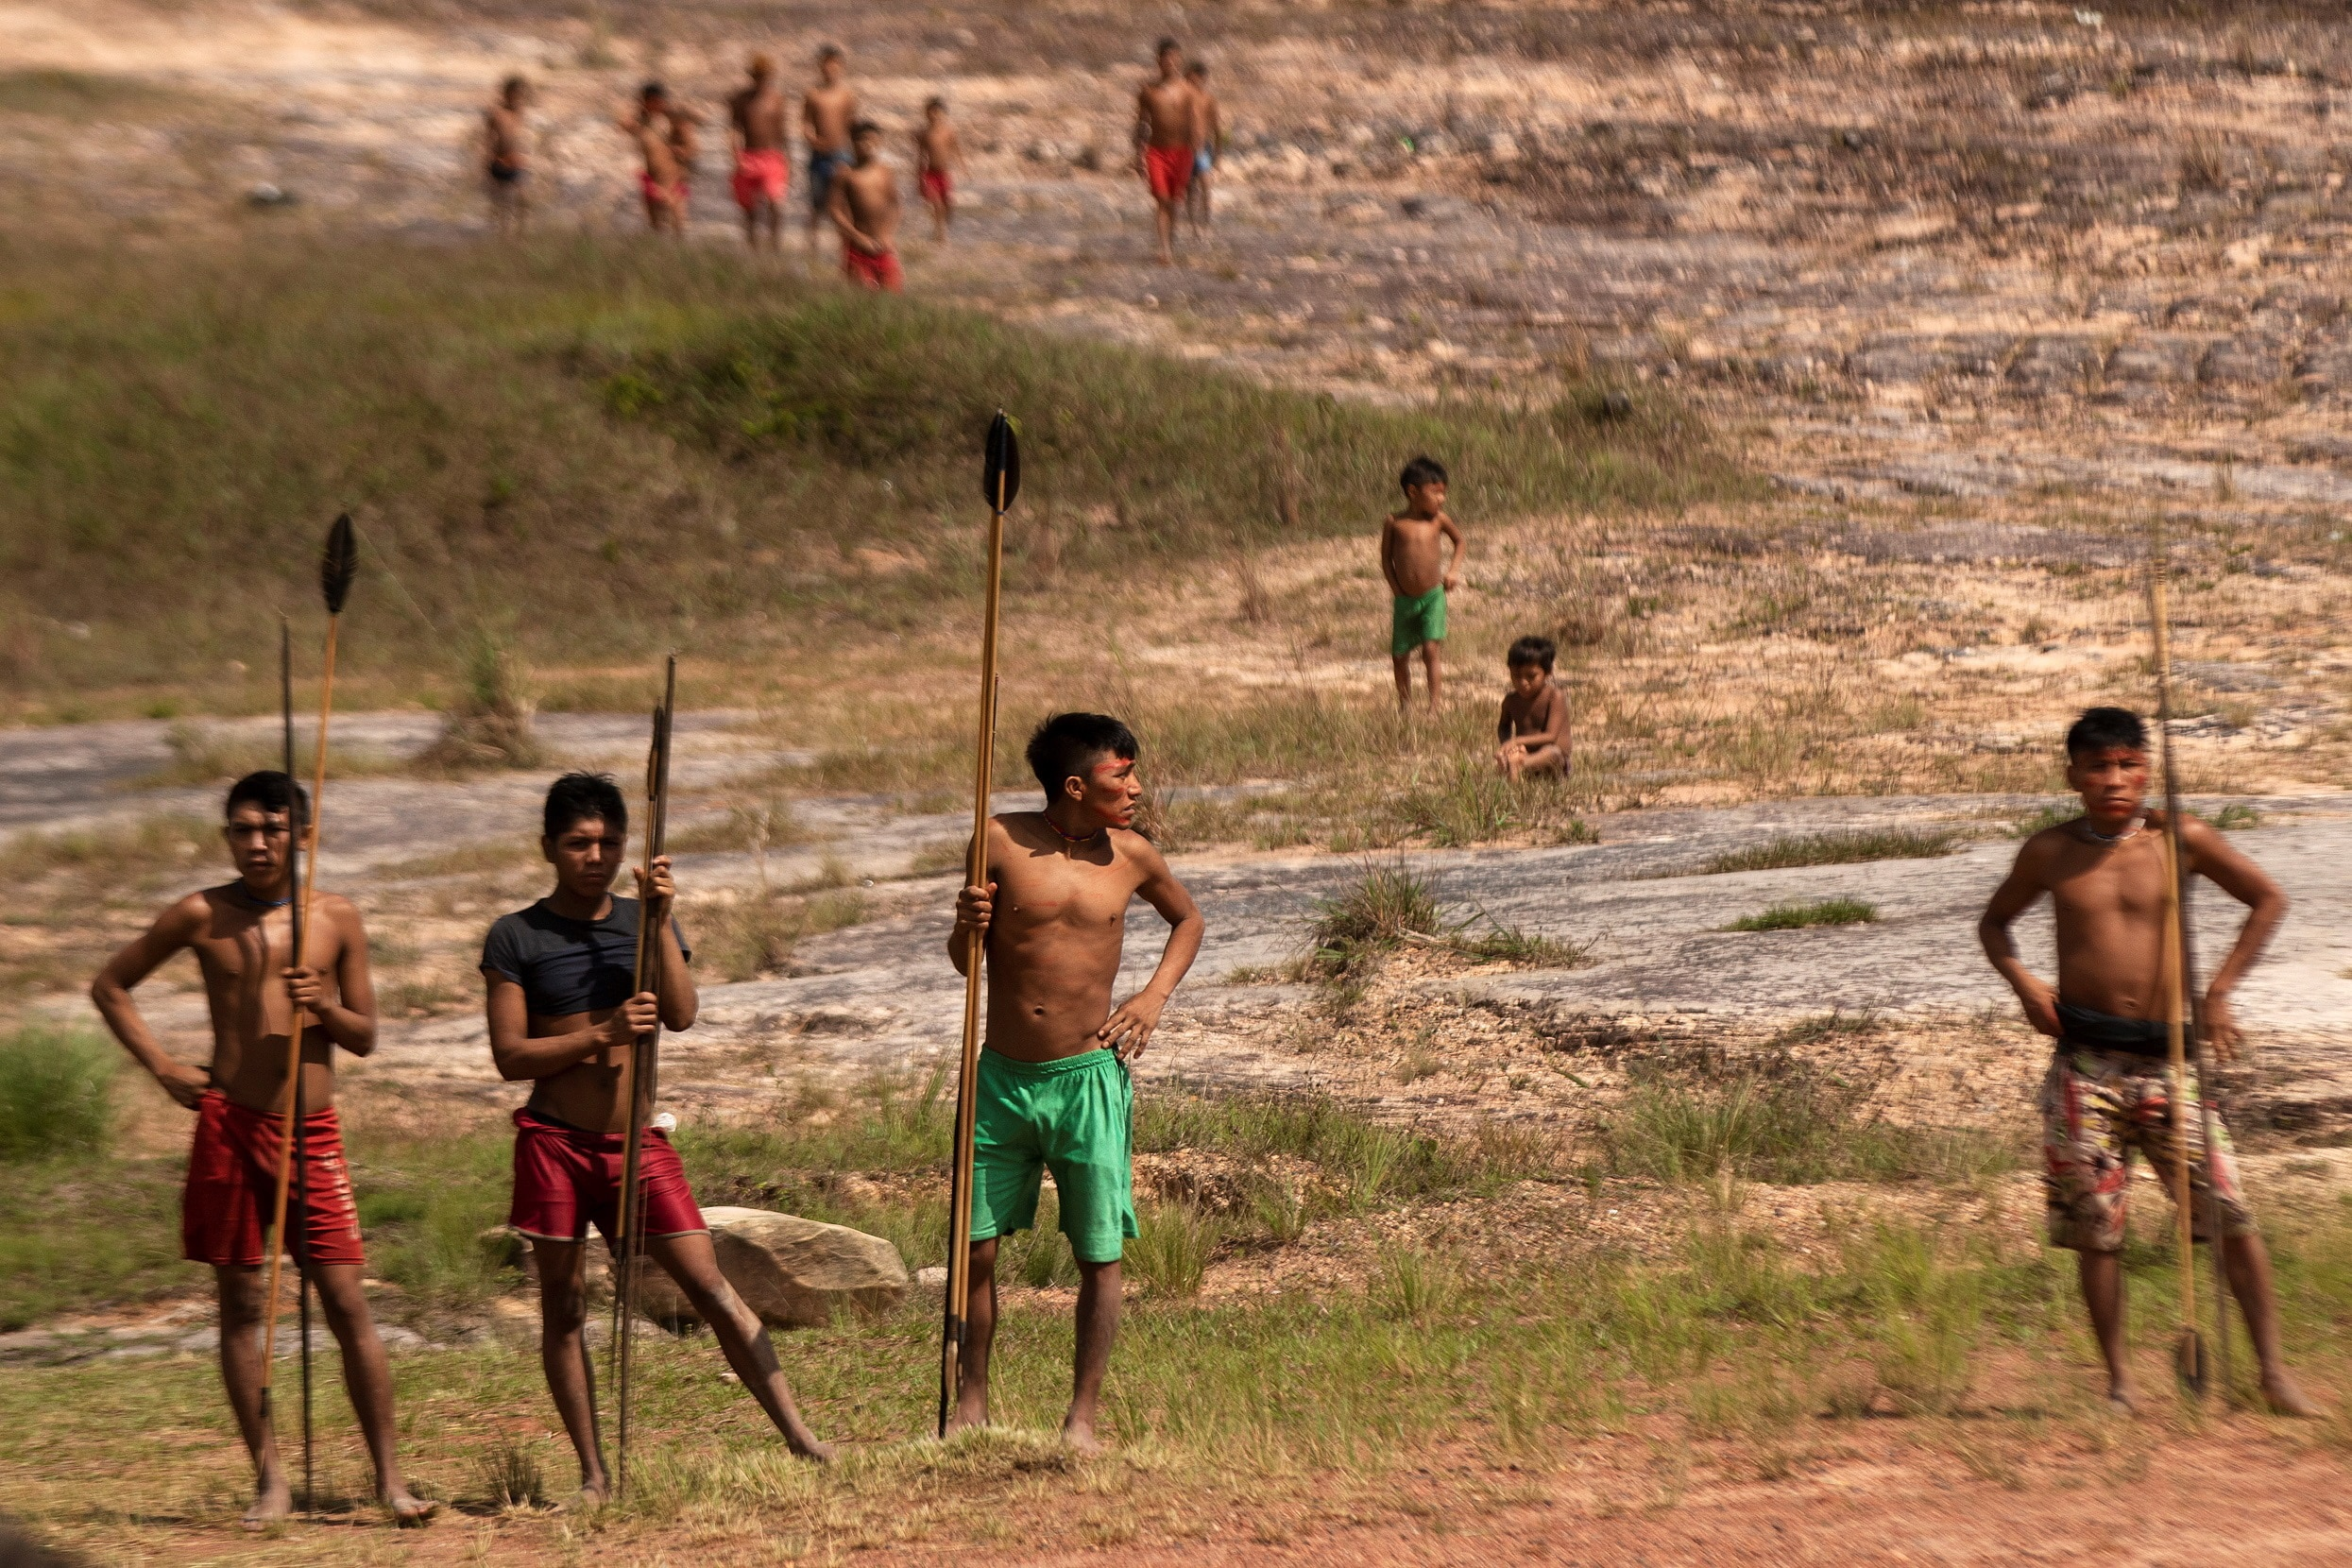 Order to evict illegal gold miners from Brazil's Amazon to protect Indigenous tribes from coronavirus – SBS News